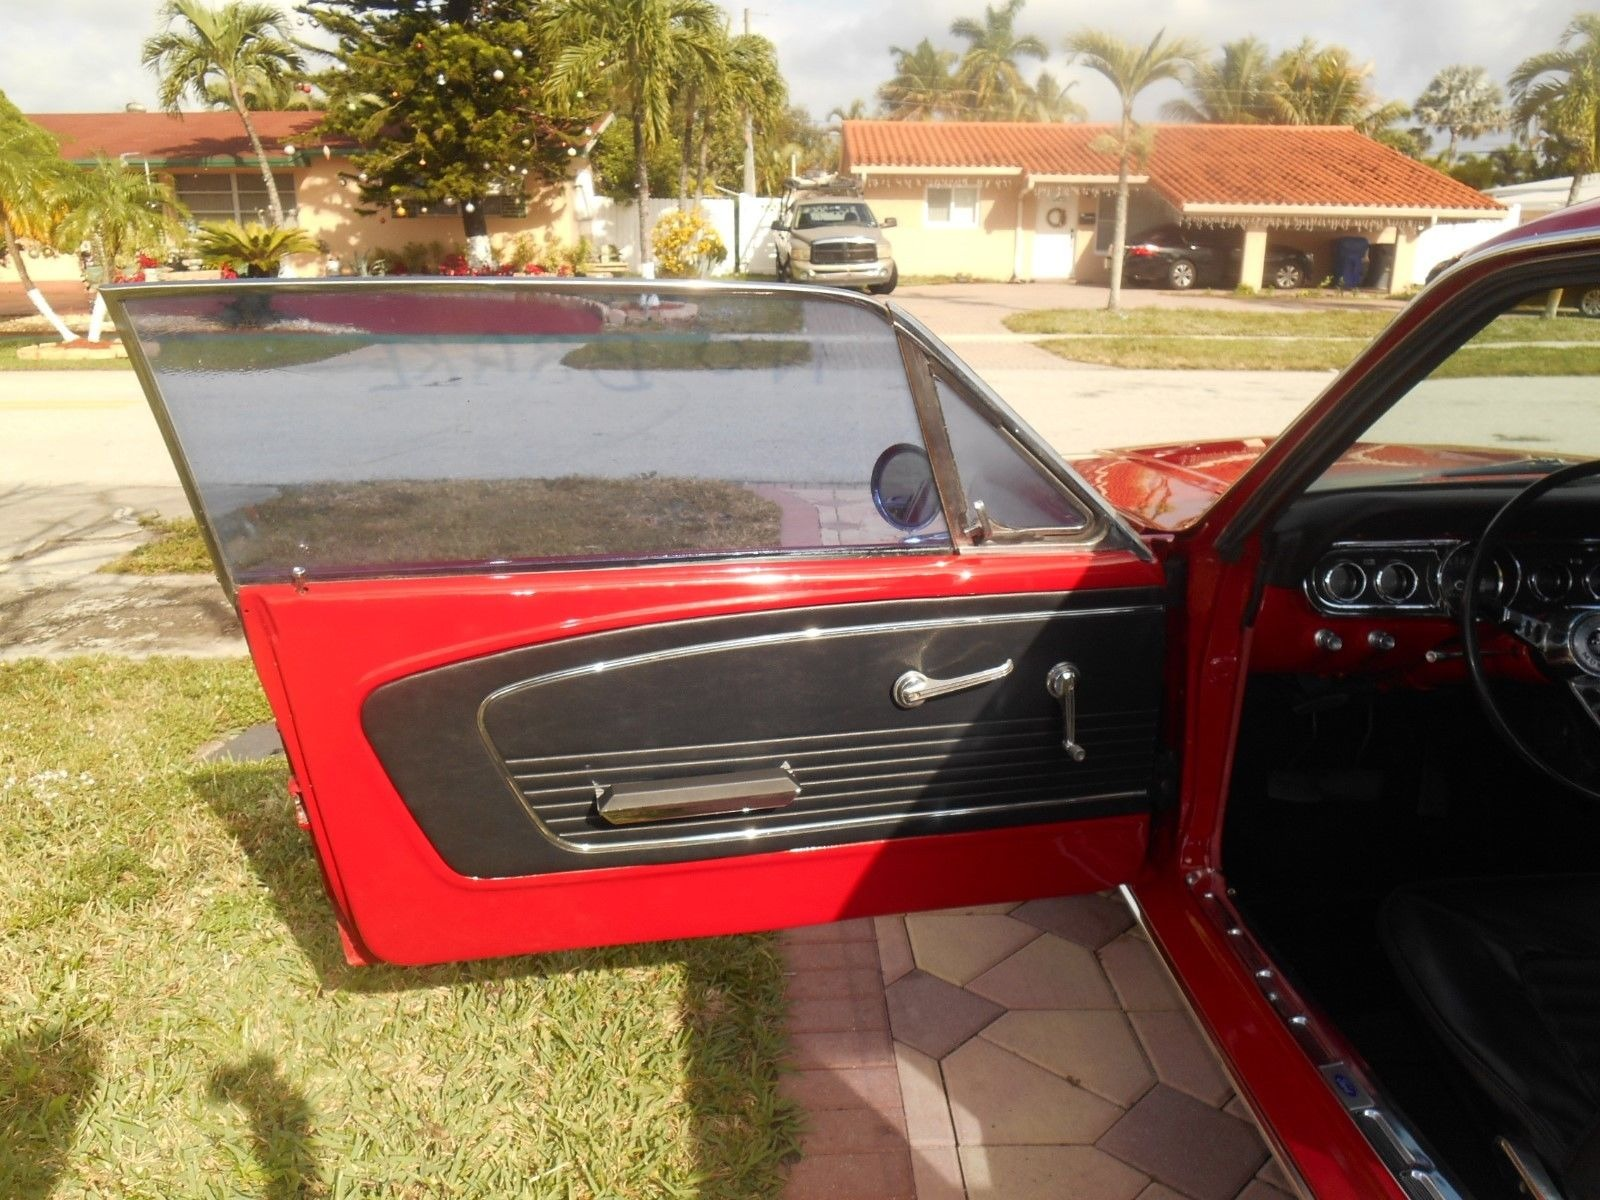 Used 1966 Ford Mustang -DELUXE CANDY APPLE RED-289 ENGINE WITH MANUAL TRANS-FLORIDA PONY CLASSIC- | Mundelein, IL